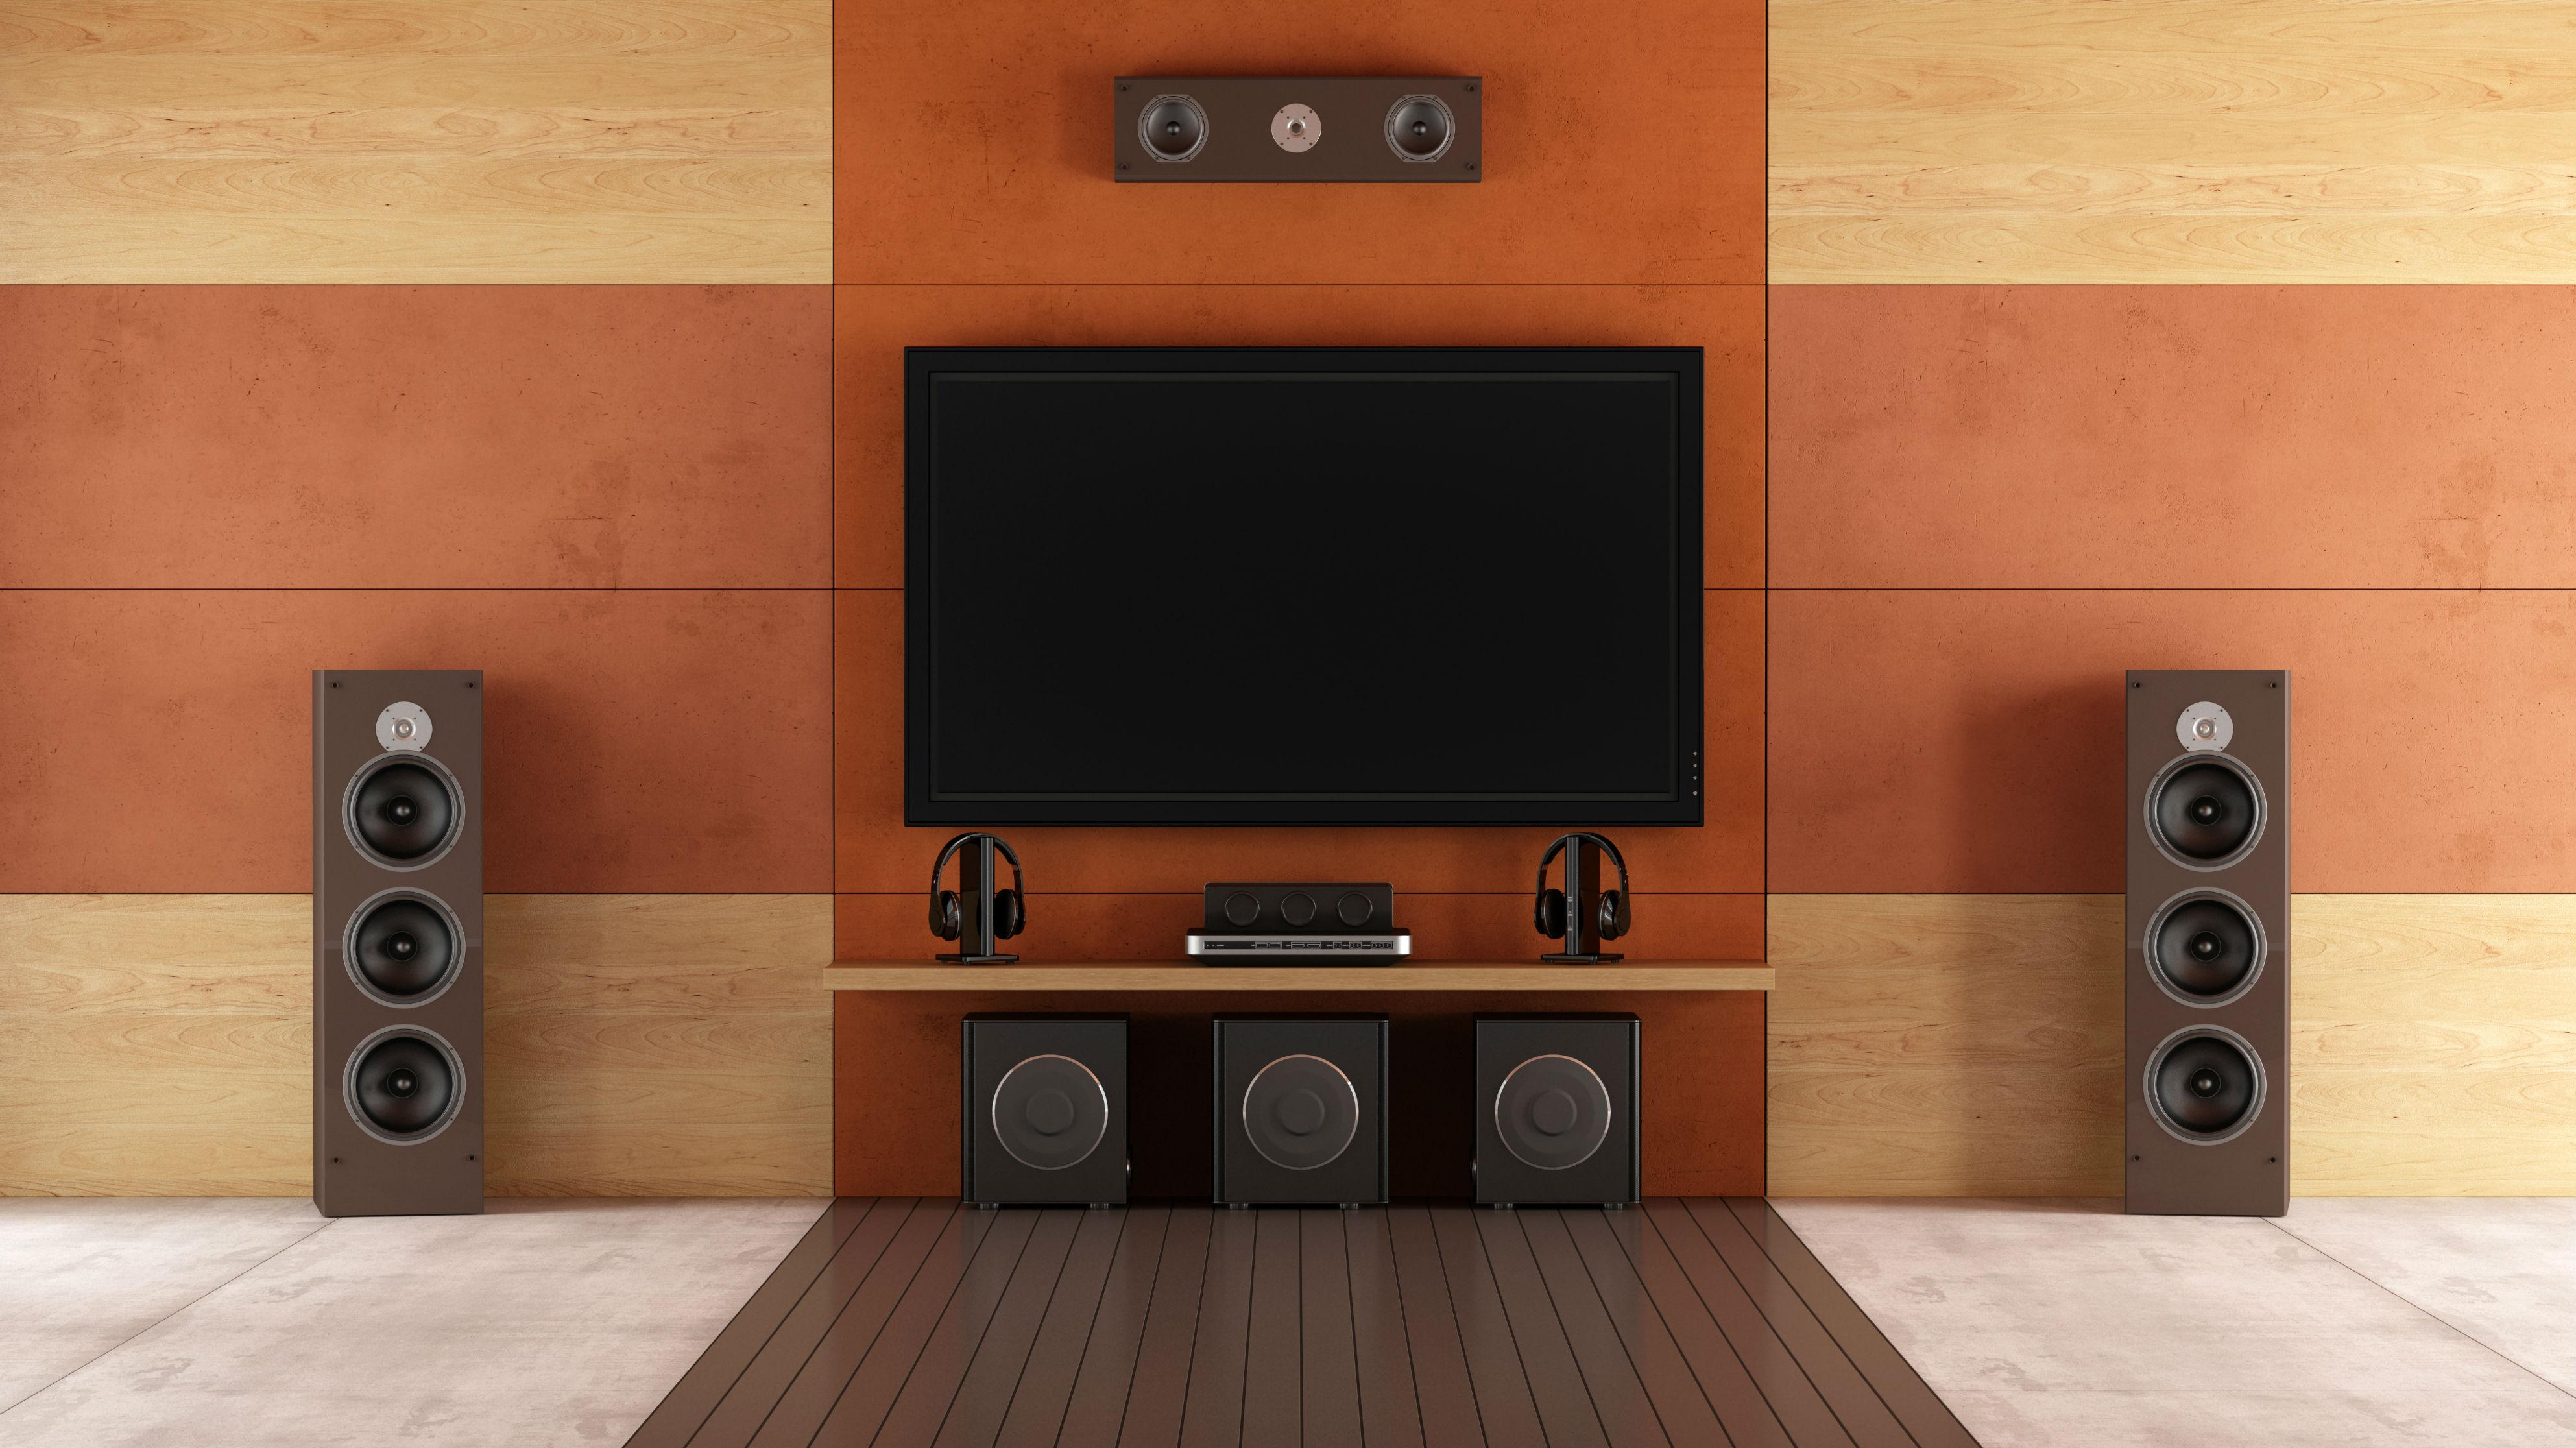 Best In Wall Home Theater Speakers how to buy speakers: a beginner's guide to home audio | digital trends